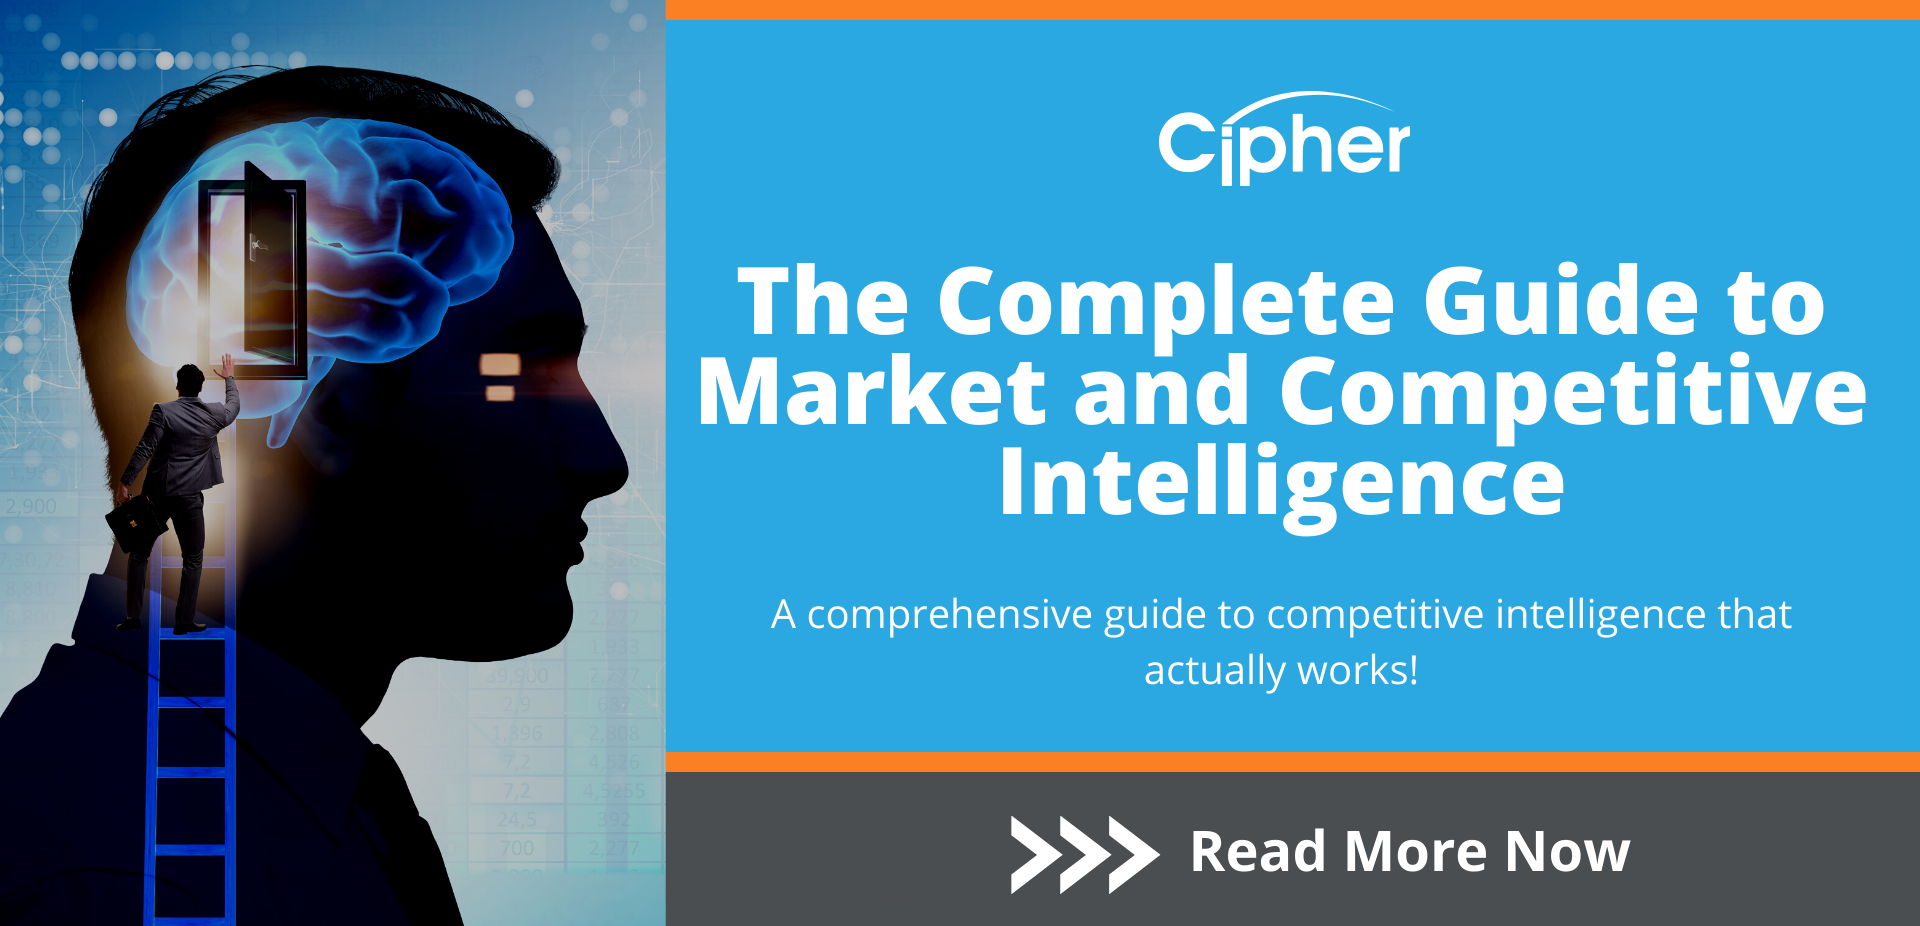 The Complete Guide to Market and Competitive Intelligence